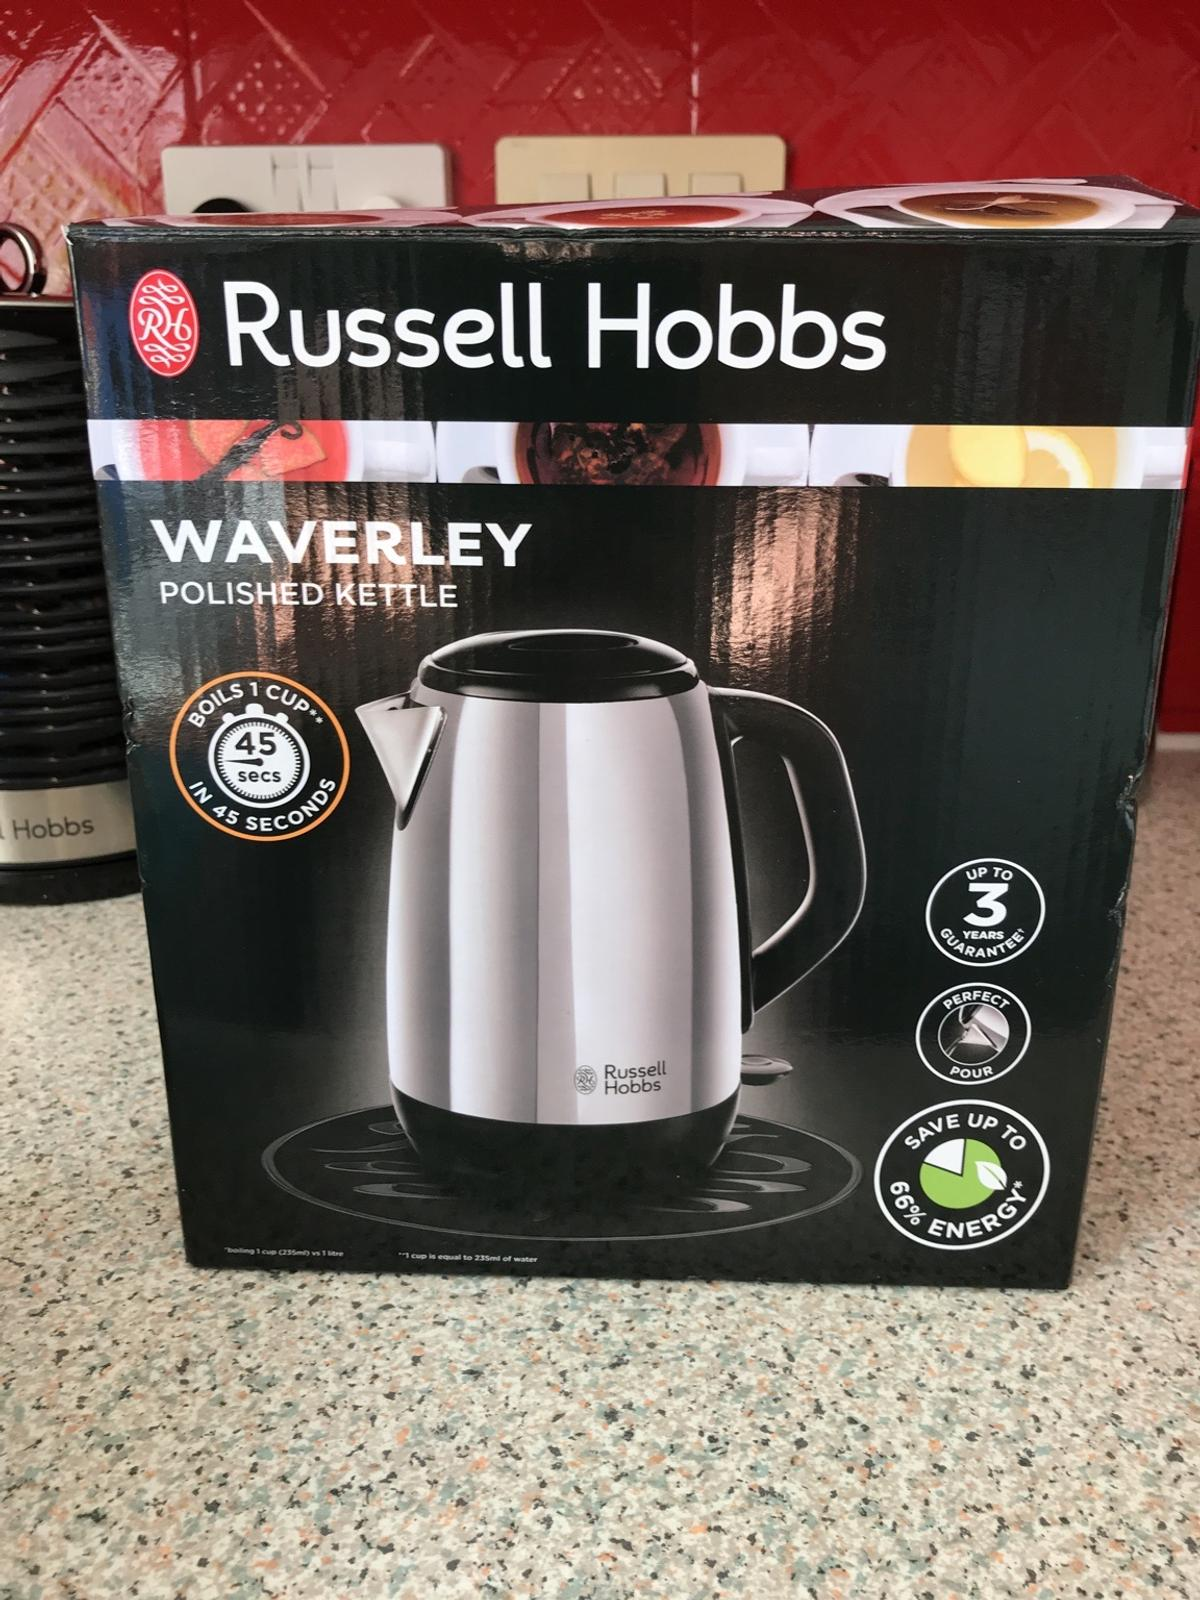 Russell Hobbs kettle in St Helens for